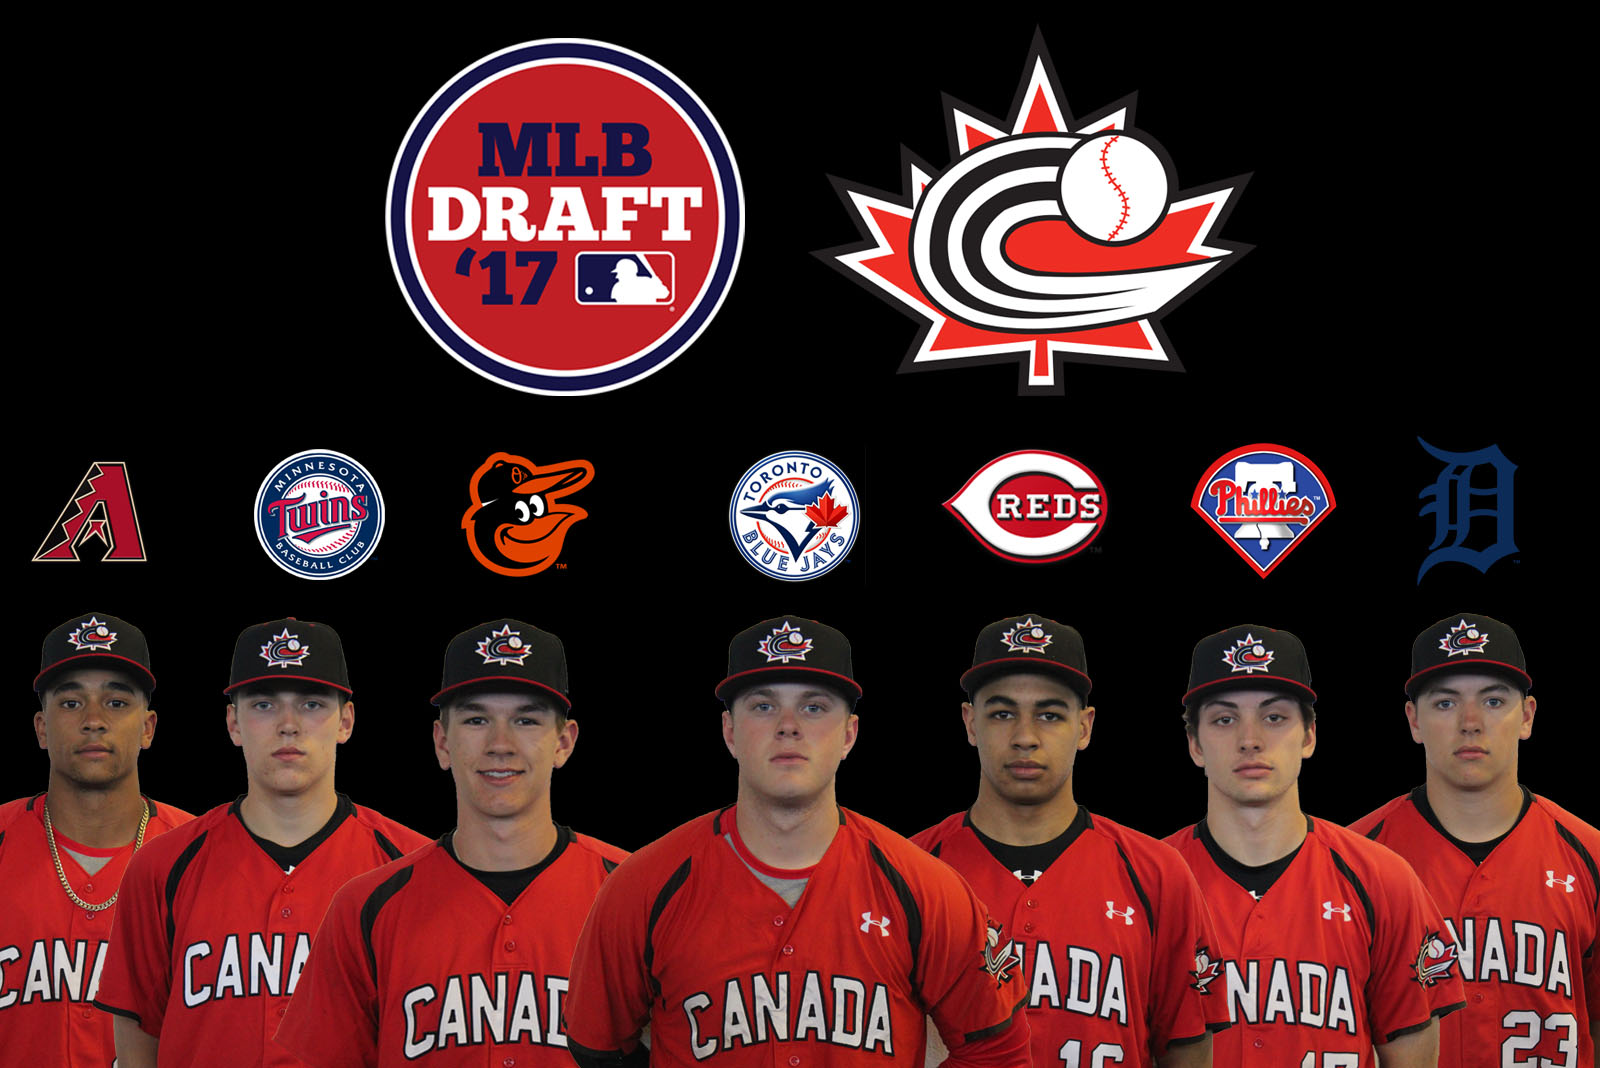 Seven Junior National Team members selected on final day of MLB Draft